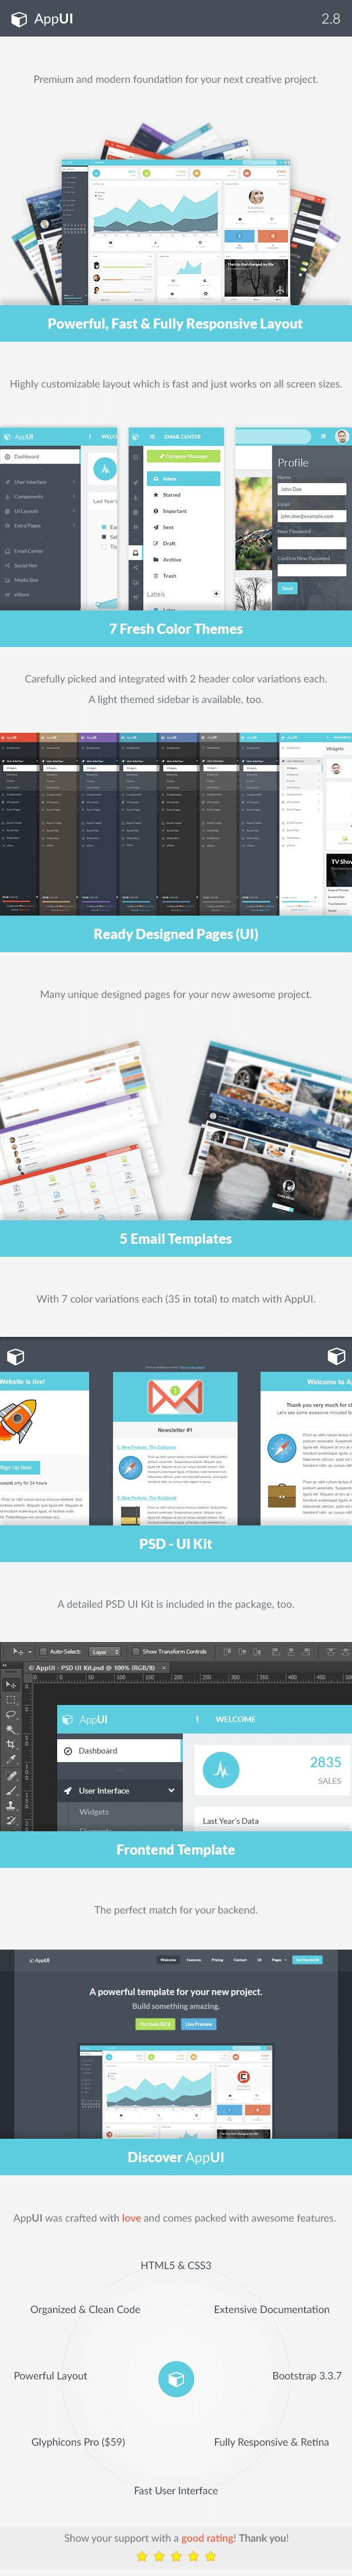 Admin Lab - Responsive Admin Dashboard Template | Dashboard ...